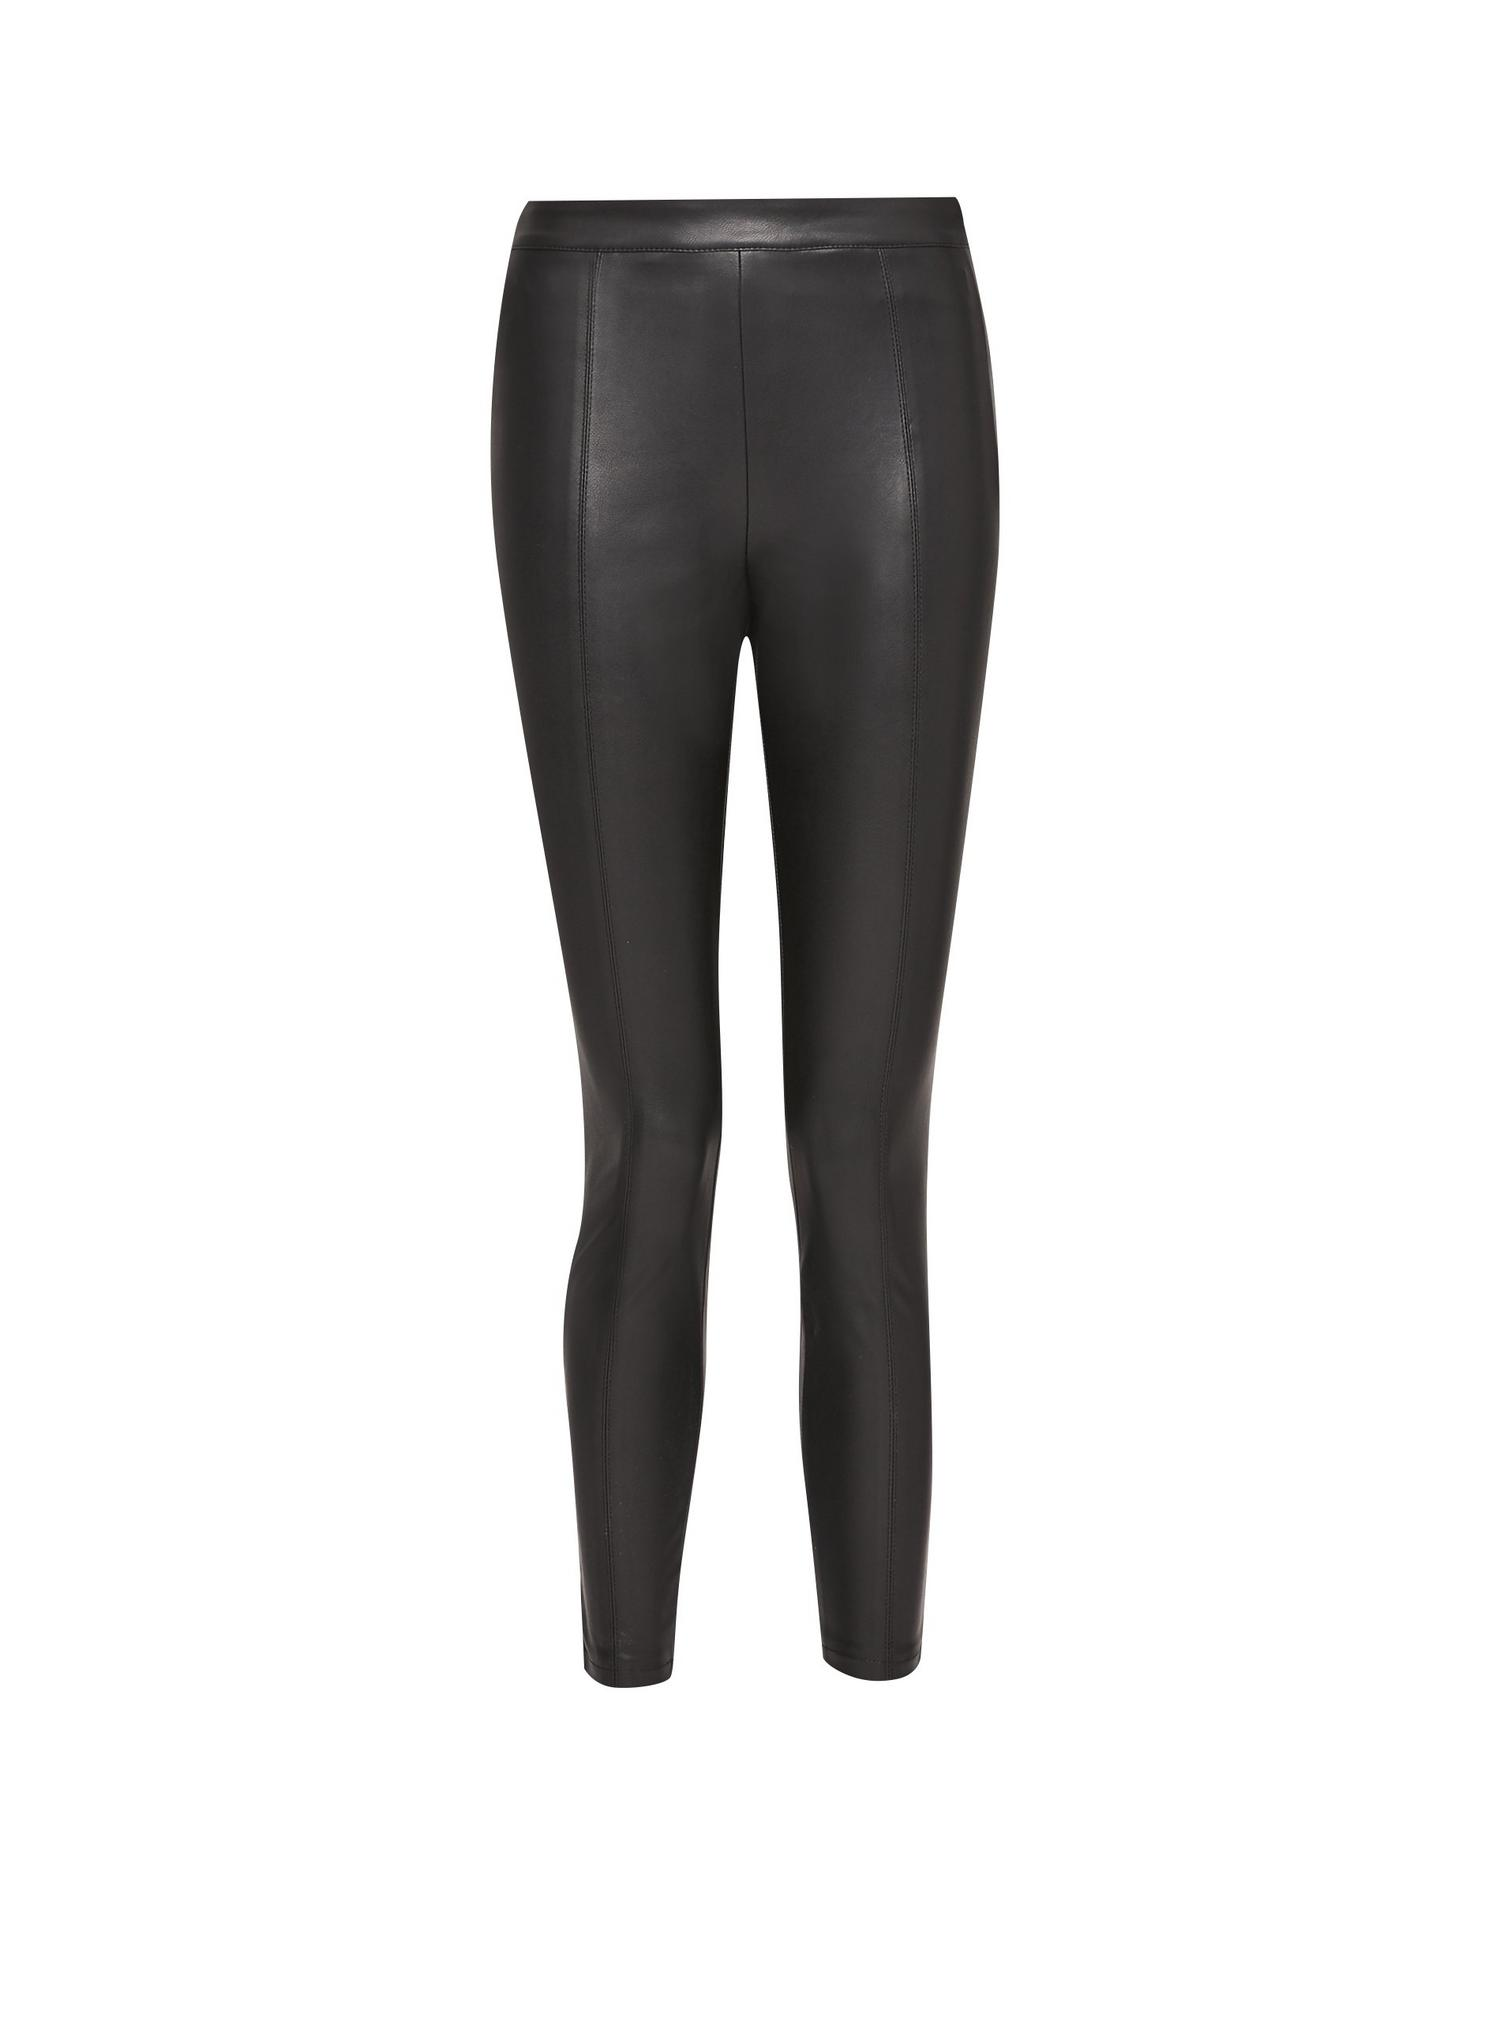 105 Petite Black PU Treggings image number 2